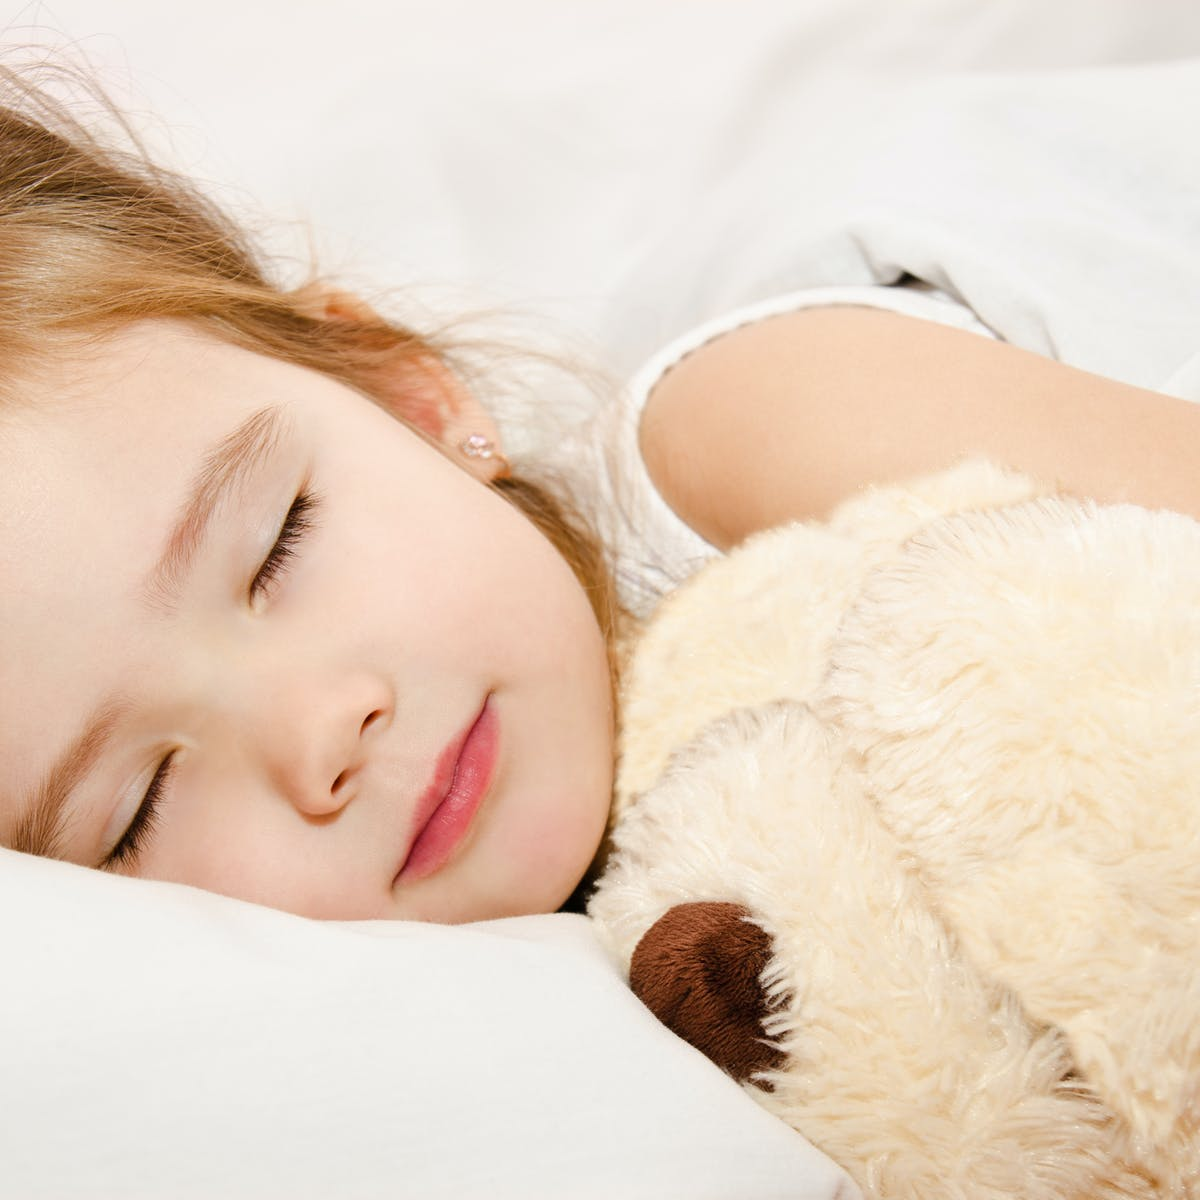 Does a lack of sleep really make children overweight? Here's